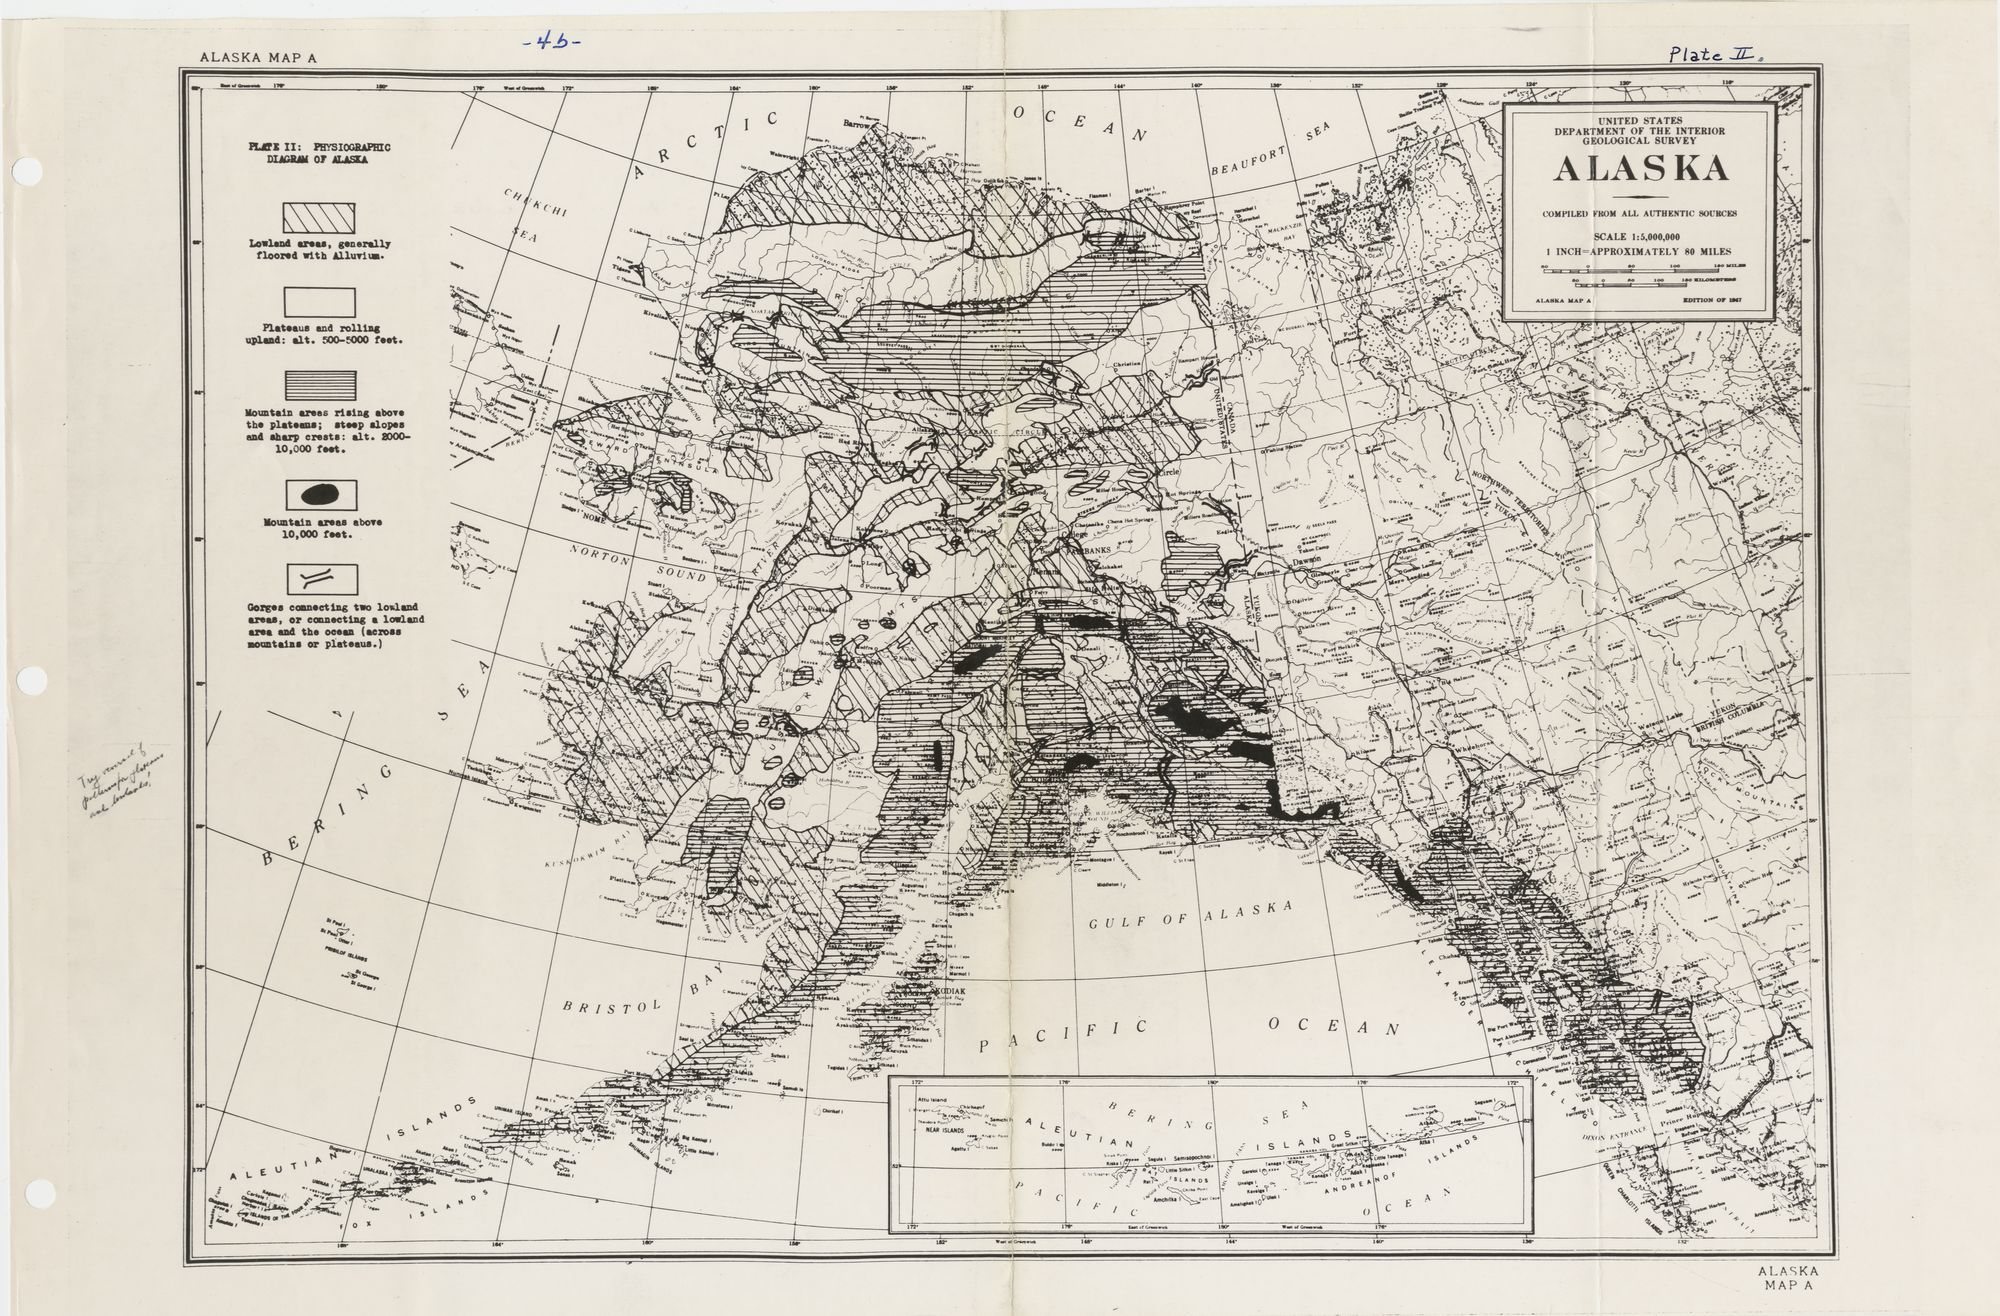 Glasregal Zigzag+atlas Physiography Of Alaska Encyclopedia Arctica Volume 1 Geology And